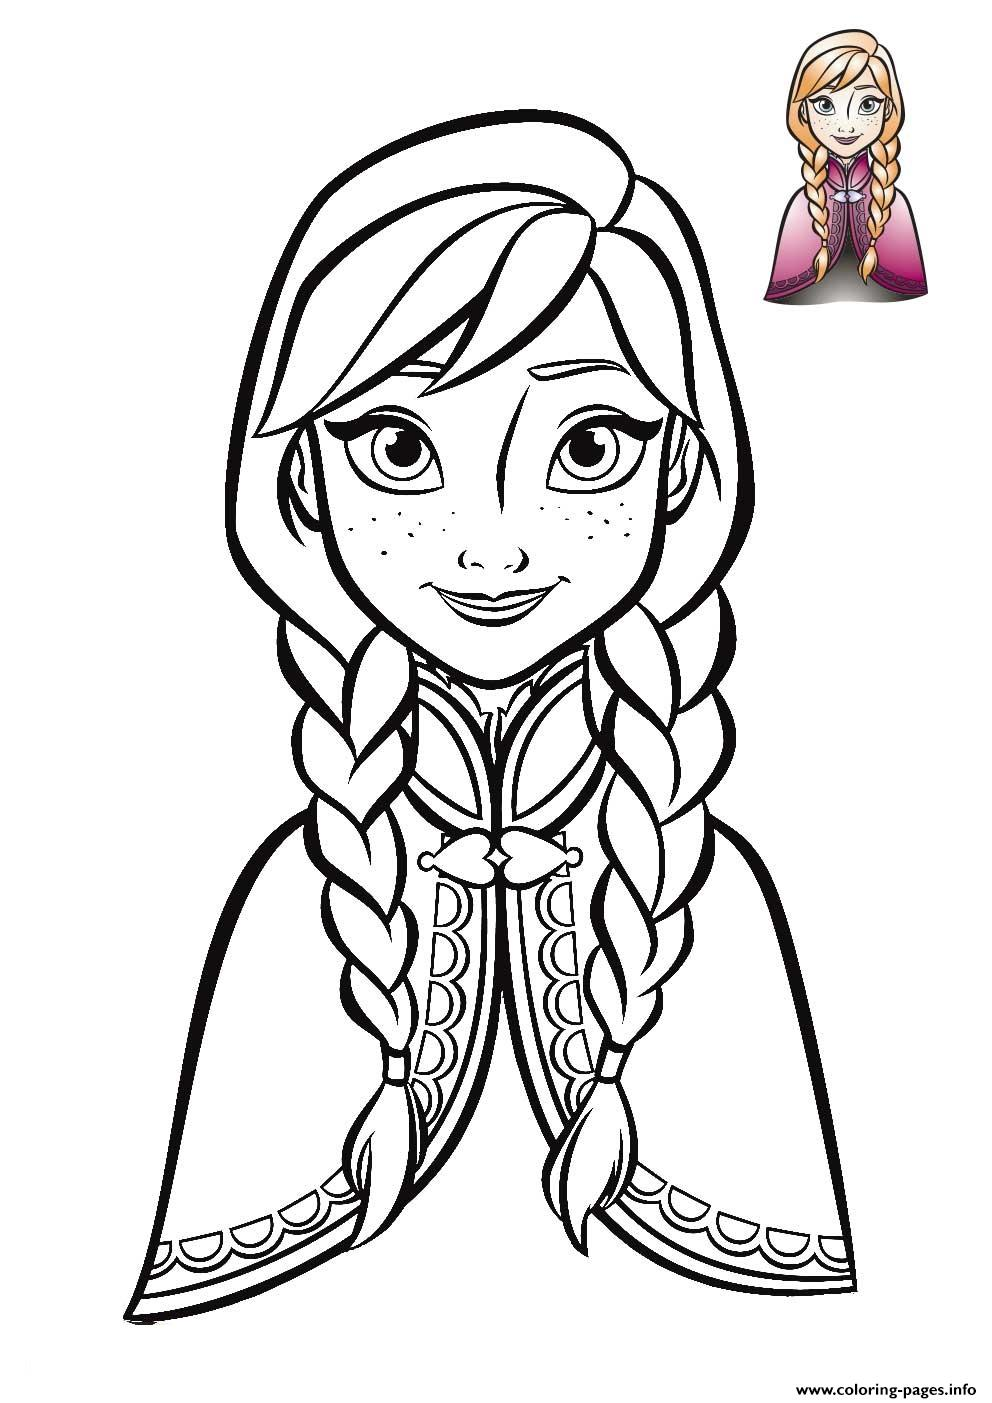 auna frozen coloring pages - photo#21